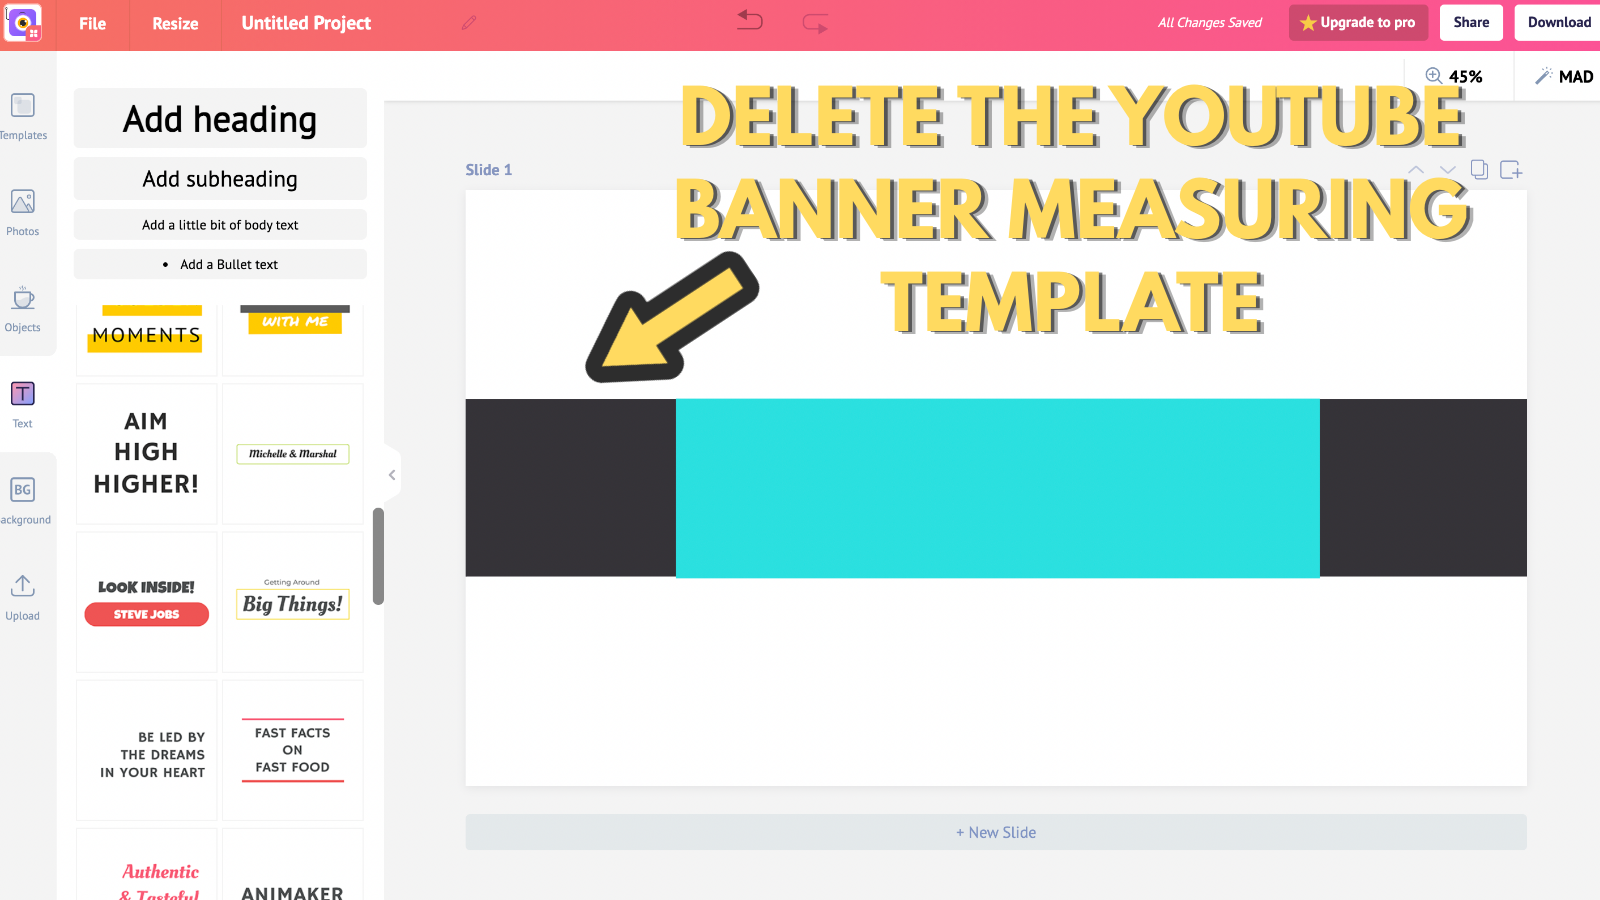 Screenshot that asks you to delete the youtube banner measuring template (to make youtube banner)